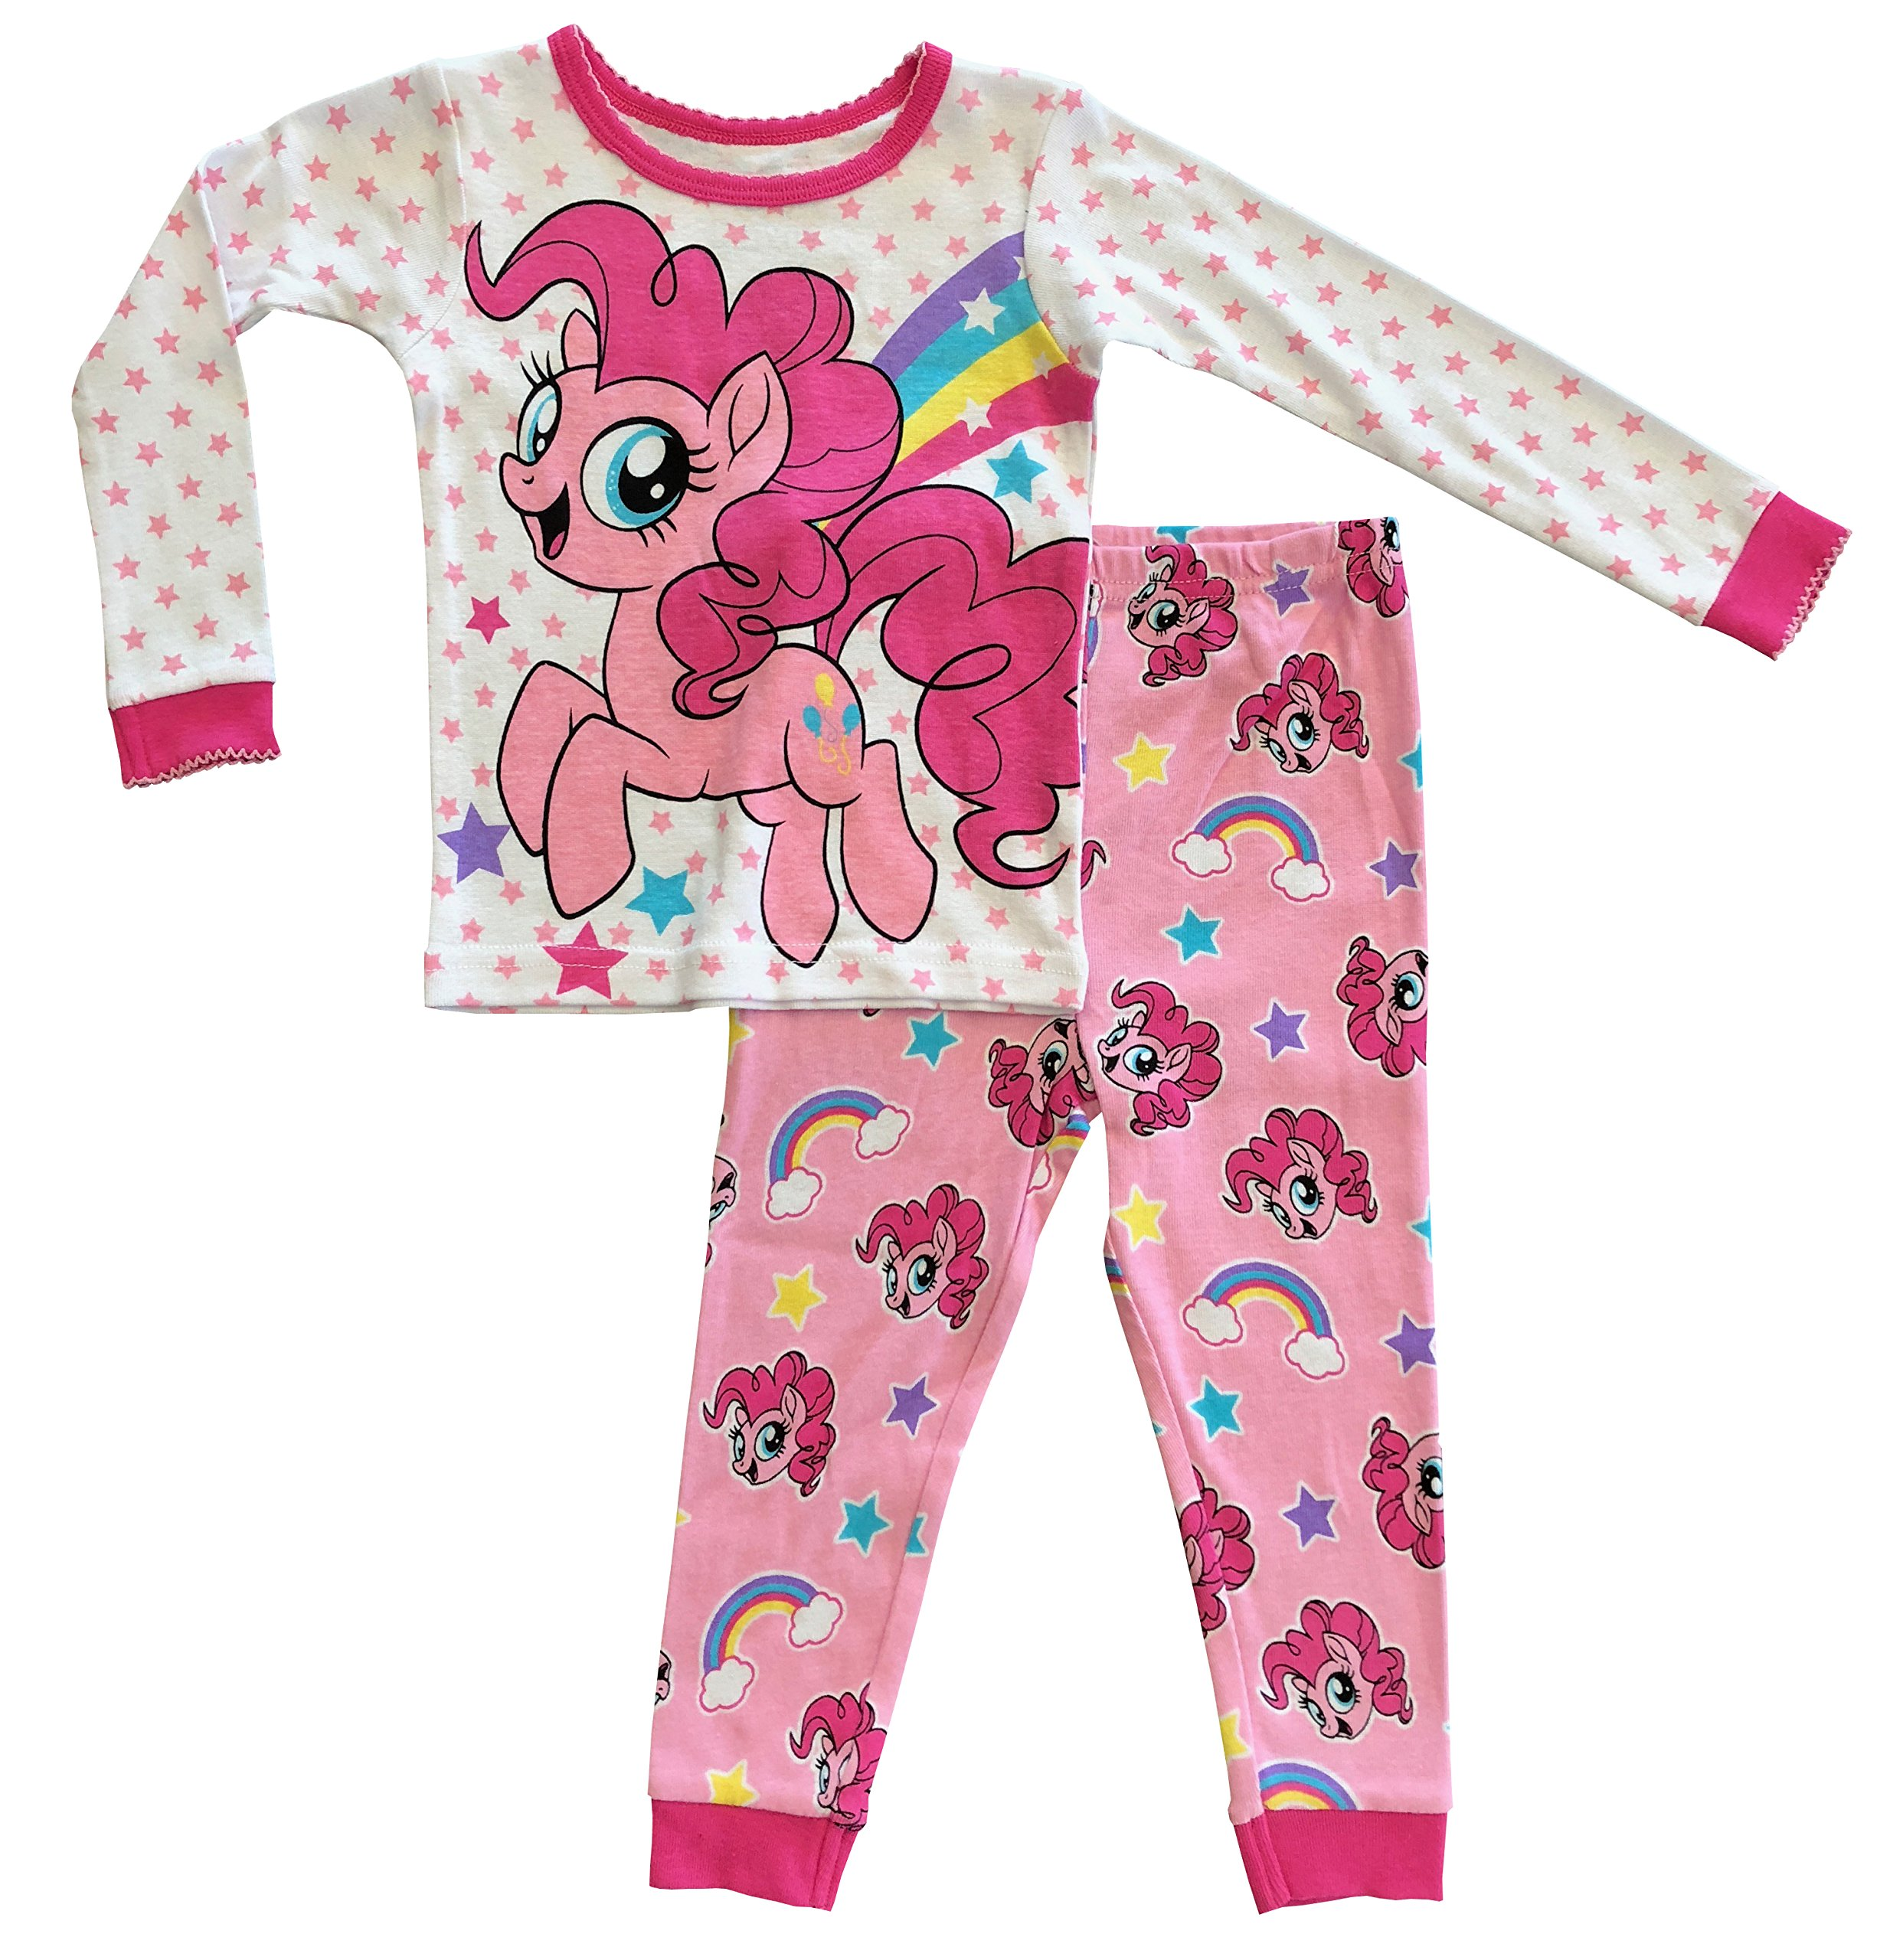 My Little Pony The Movie Toddler Girls Cotton Tight Fit Pajamas (2T)